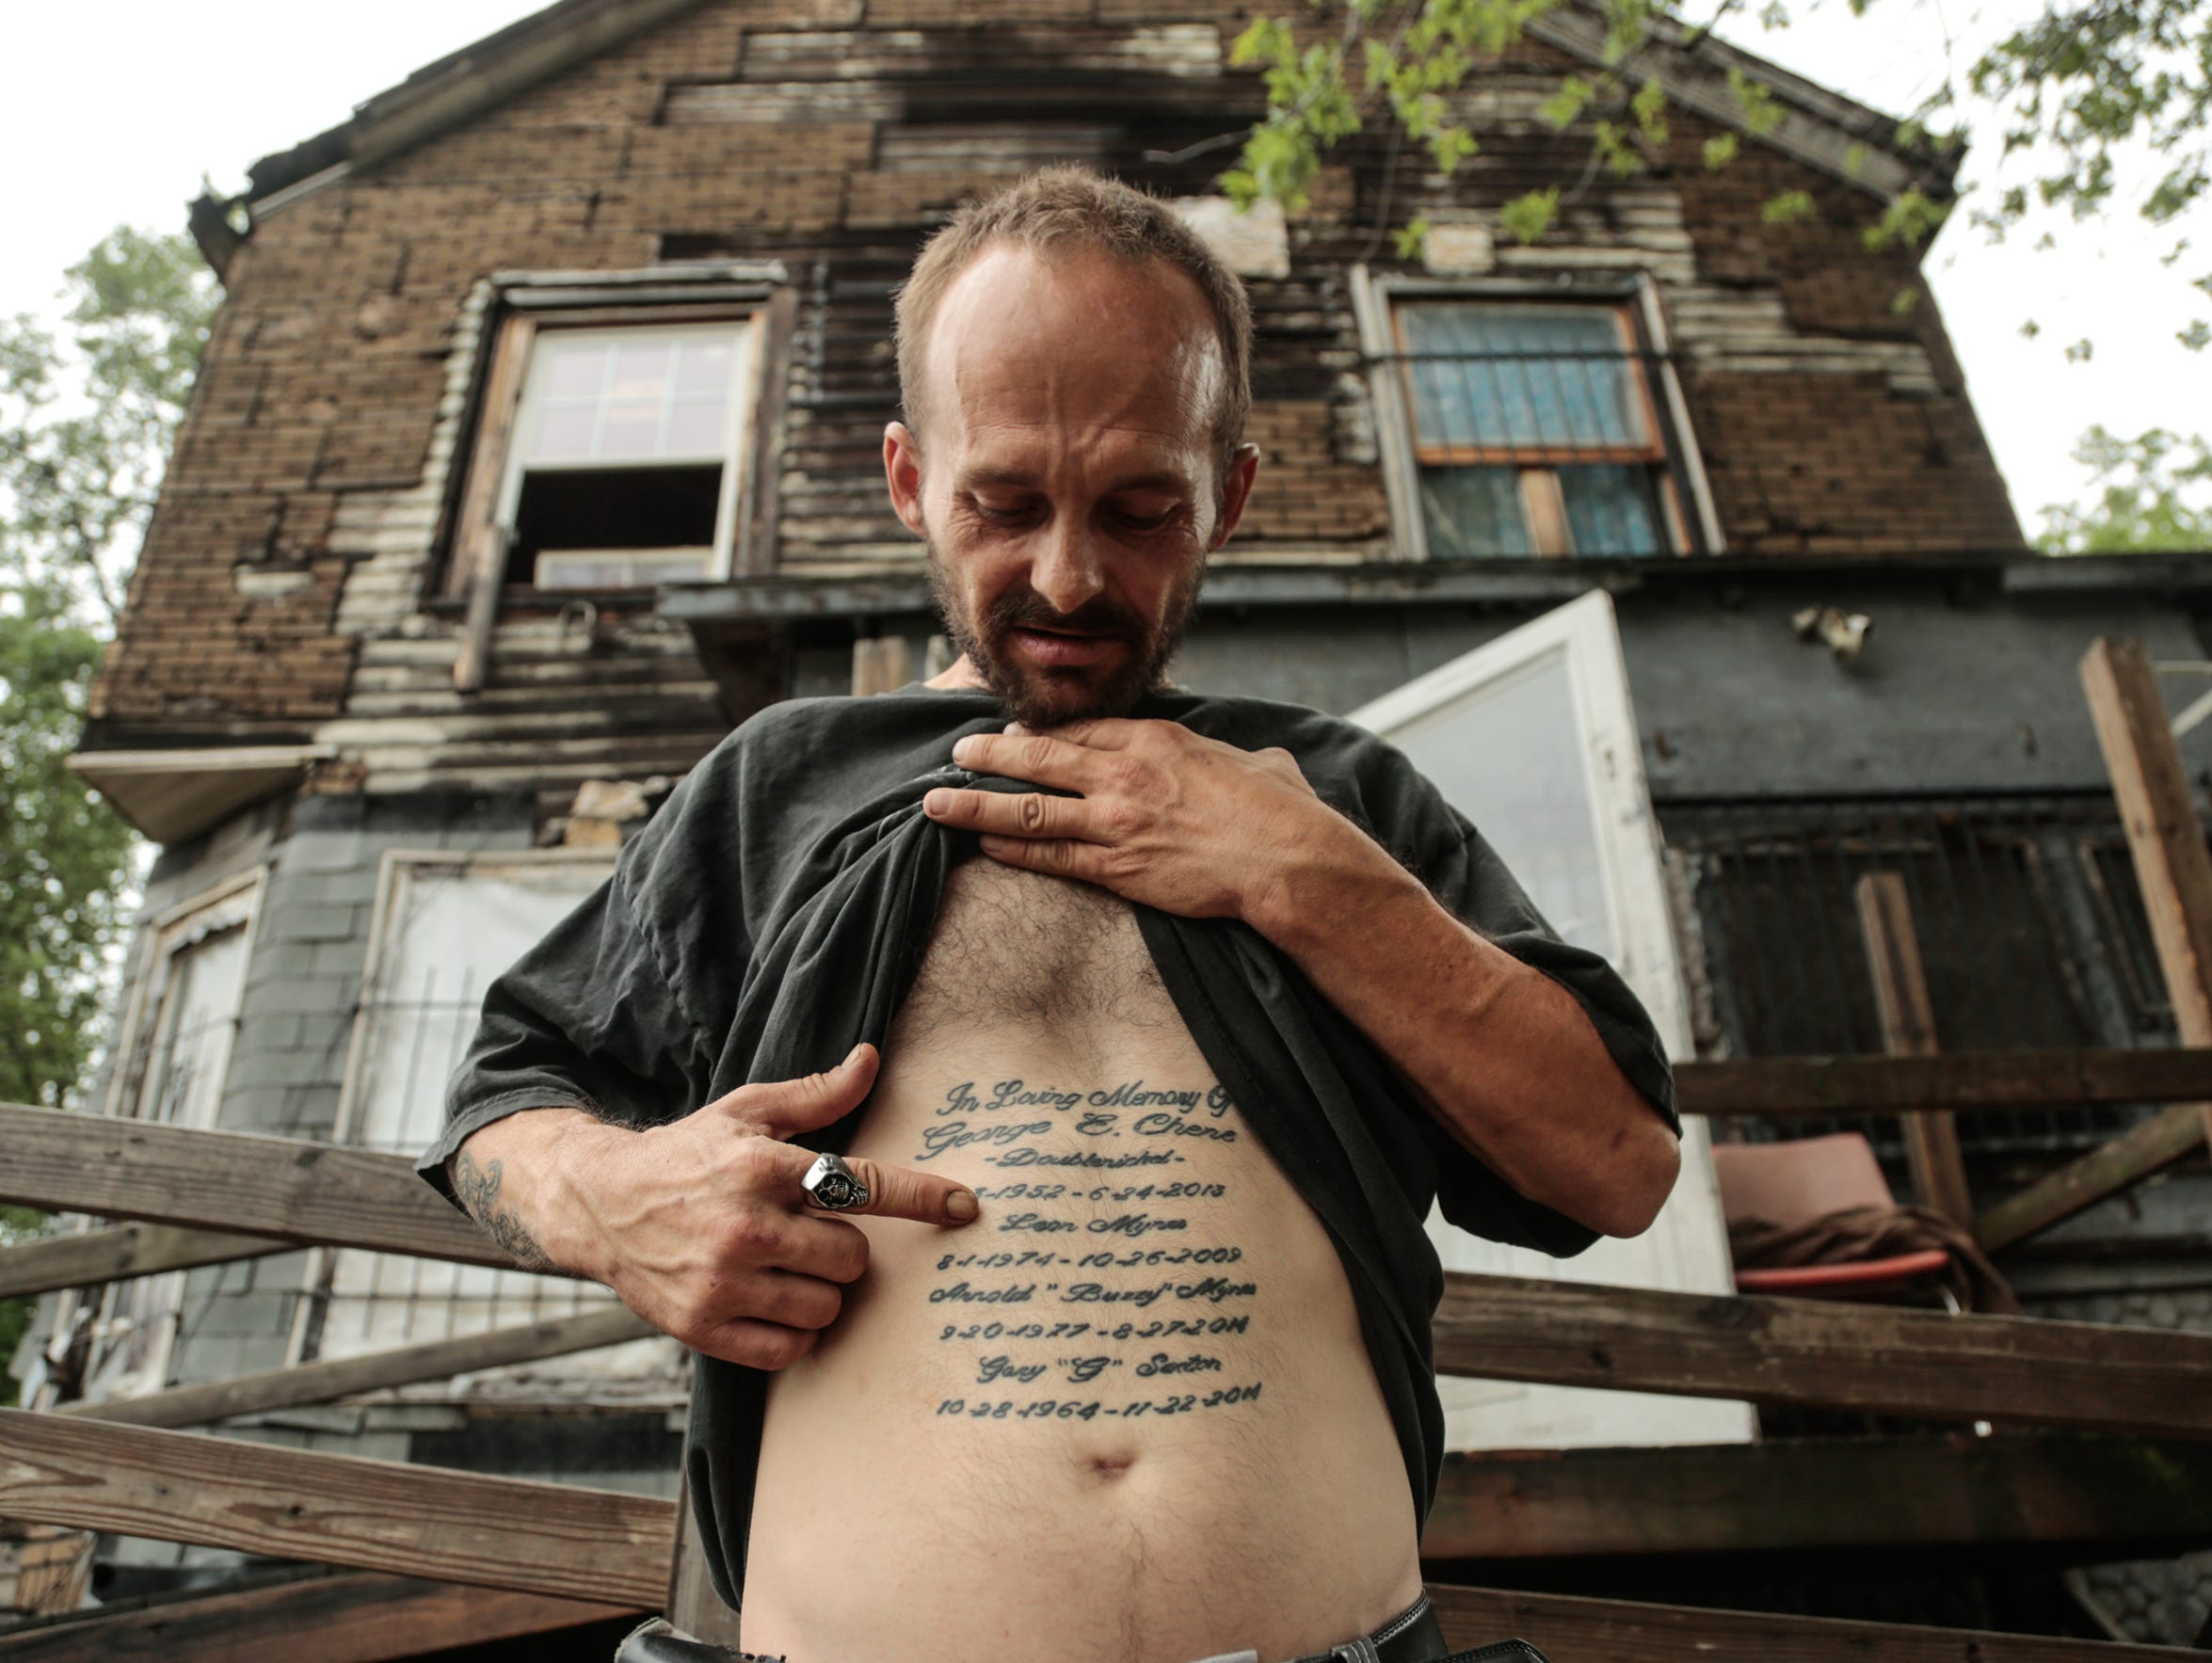 """Leon died from the swine flu,"" said George Chene, 39, of Detroit on July 12, 2017 while telling the story of the tattooed list on his stomach marking the birthdates and death dates of relatives and friends who once stayed in the house where he lived with his girlfriend and her daughter on Dragoon Street in Detroit's Delray neighborhood. Nearly all of those people died at the house."